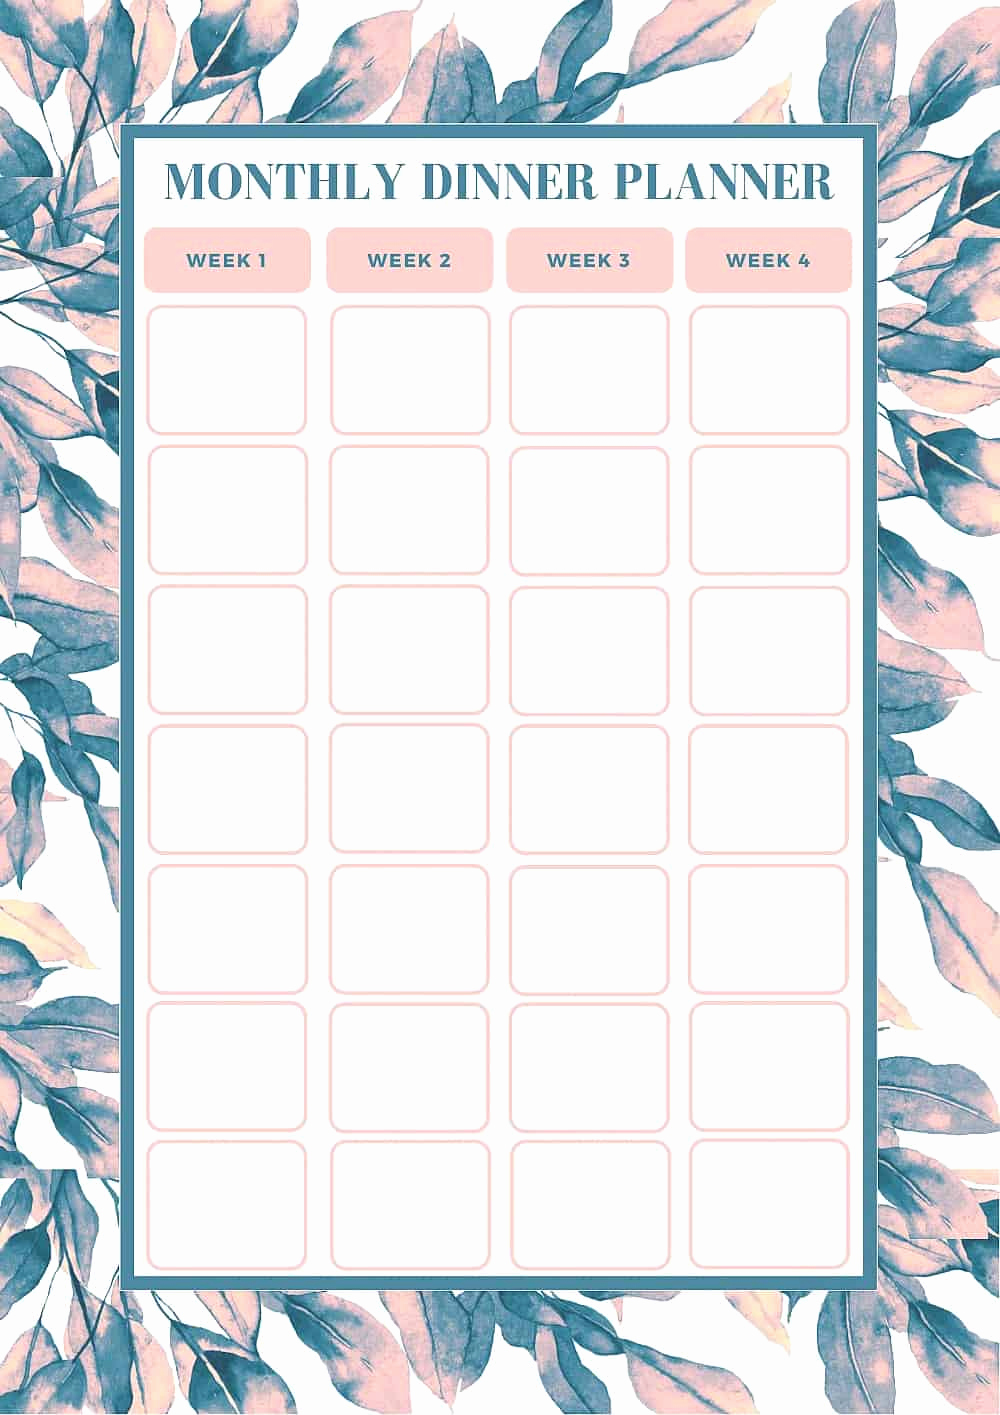 Monthly Meal Planner Template Inspirational Free Monthly Meal Planning Template Bake Play Smile